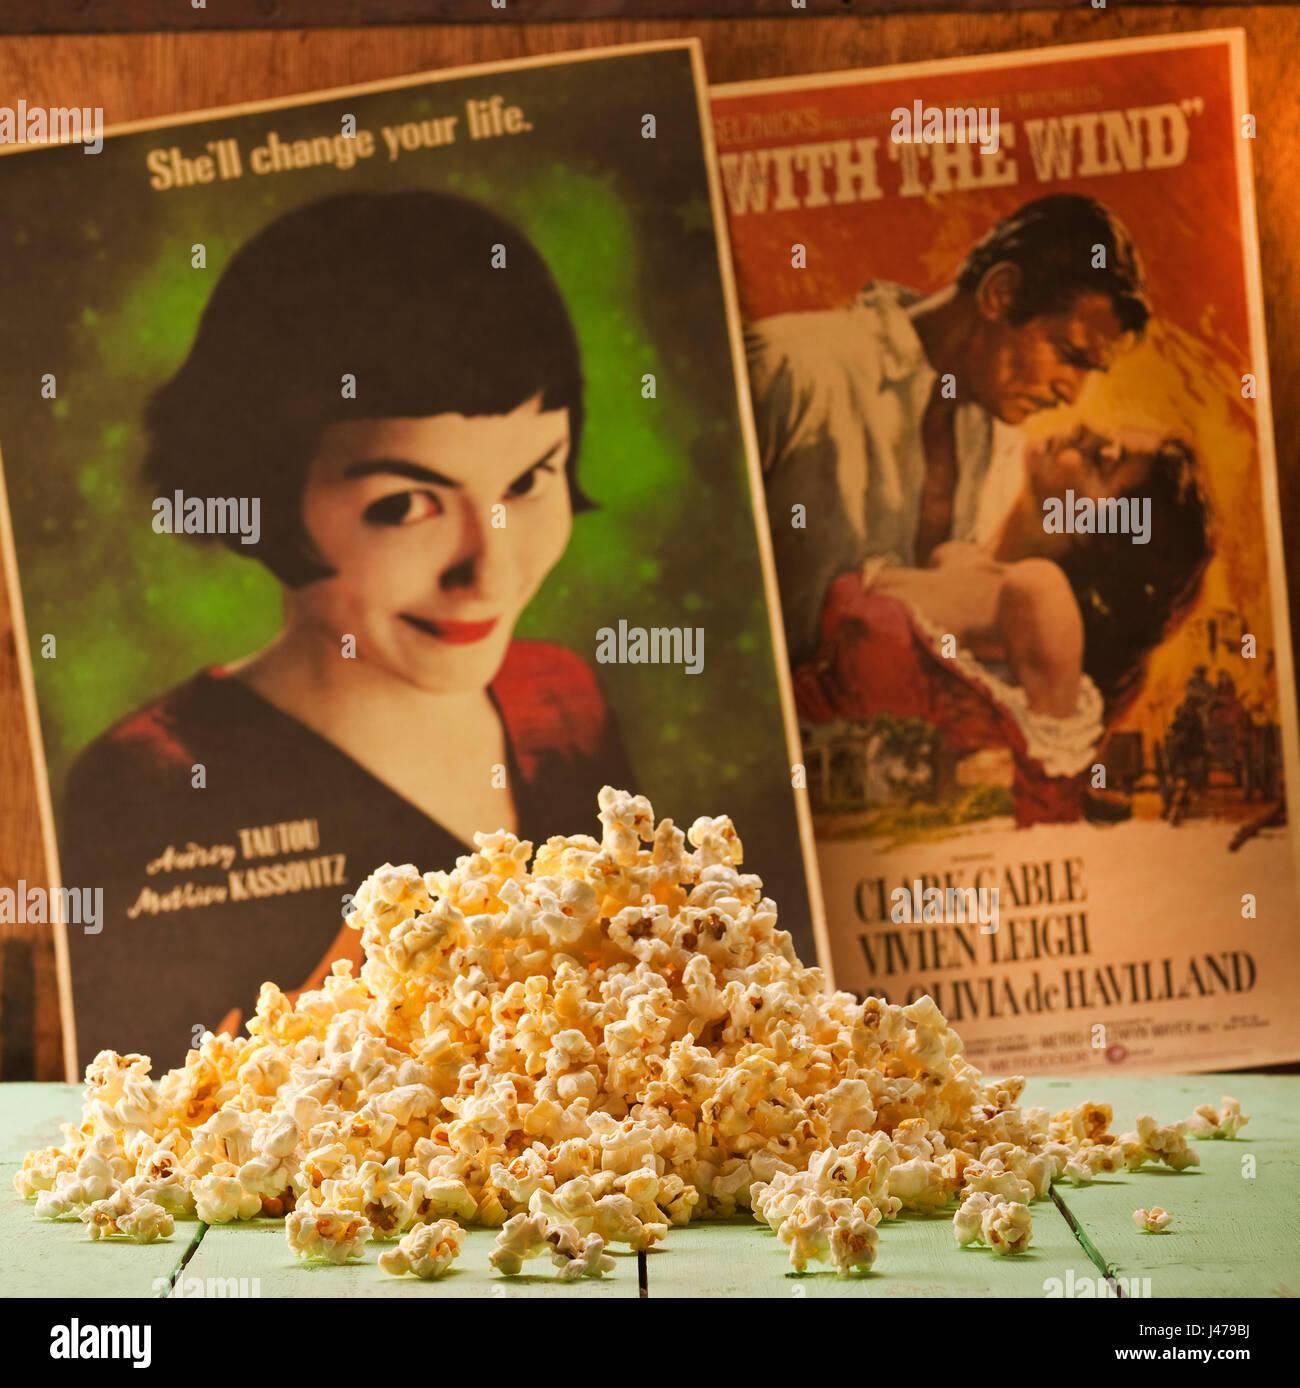 Classic film concept - a pile of popcorn with two classic film posters in the background - Stock Image